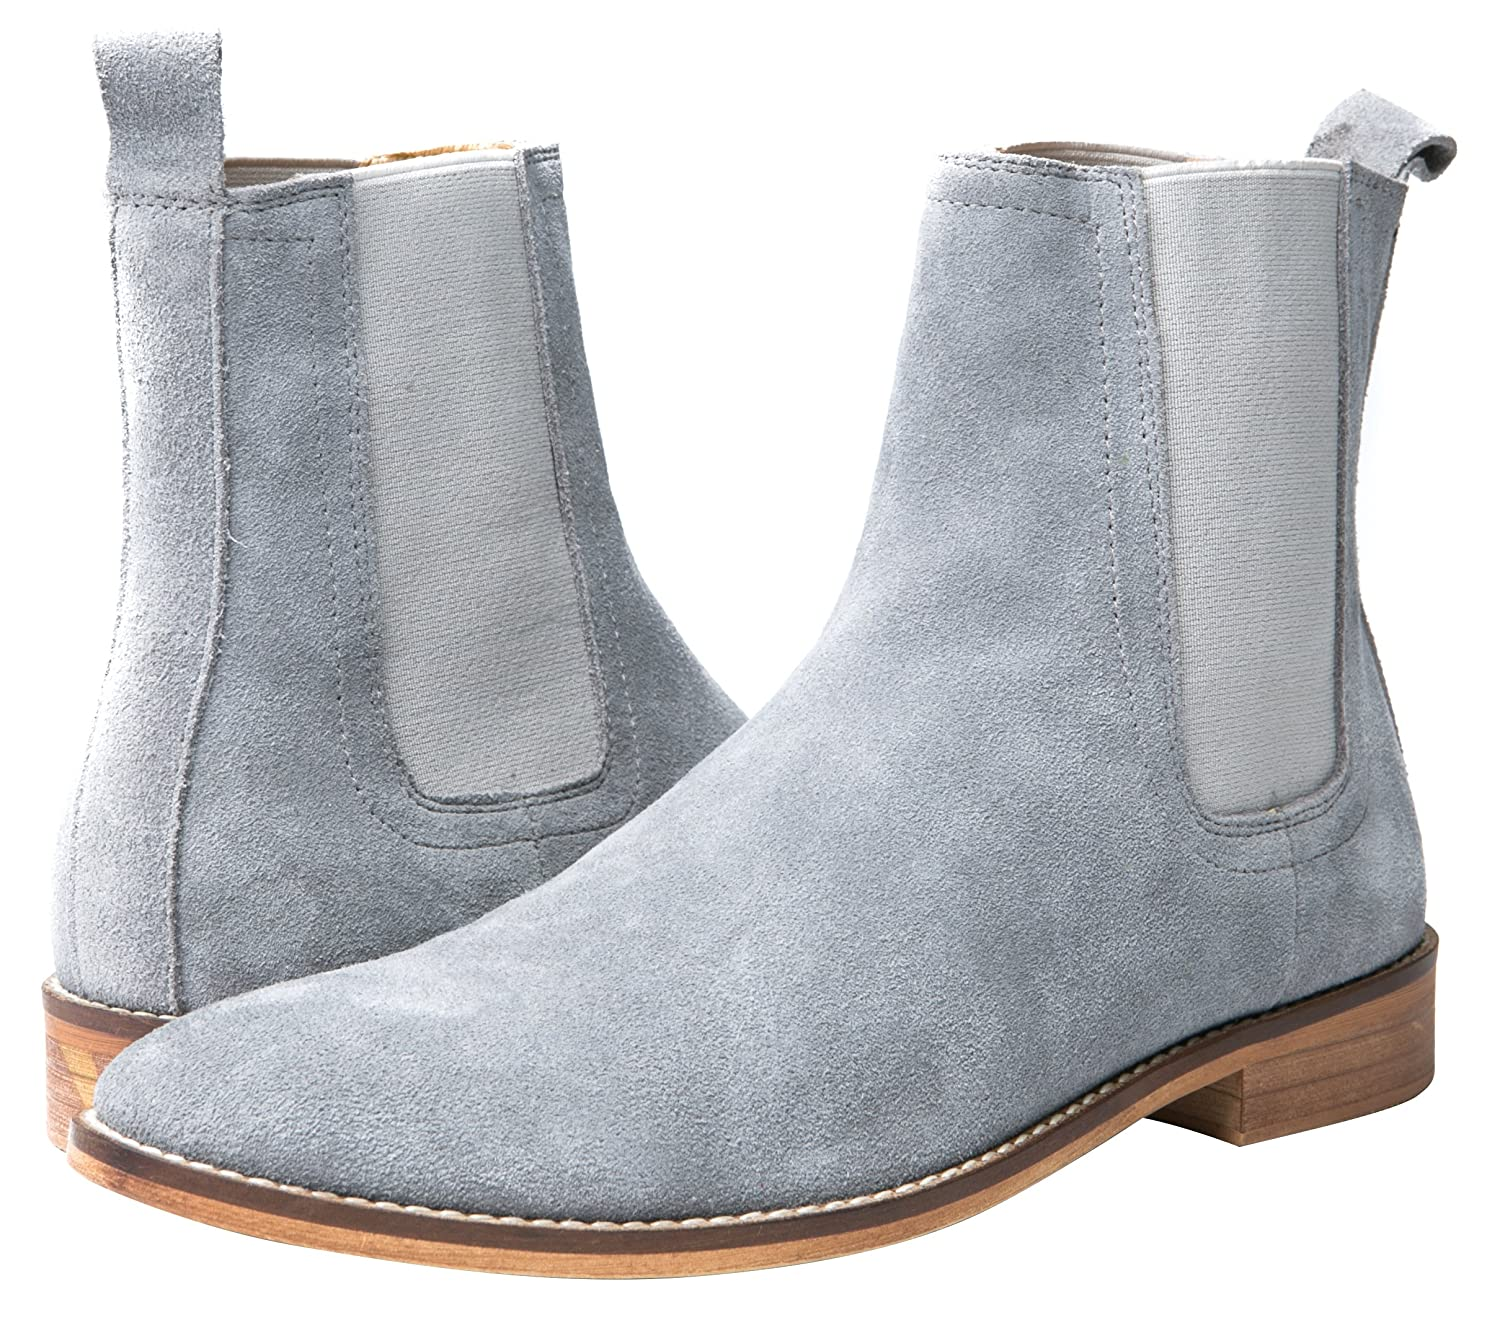 def3e171c Santimon Chelsea Boots Men Suede Casual Dress Boots Ankle Boots Formal  Shoes Black Brown Grey (6.5 US, Grey): Amazon.ca: Shoes & Handbags